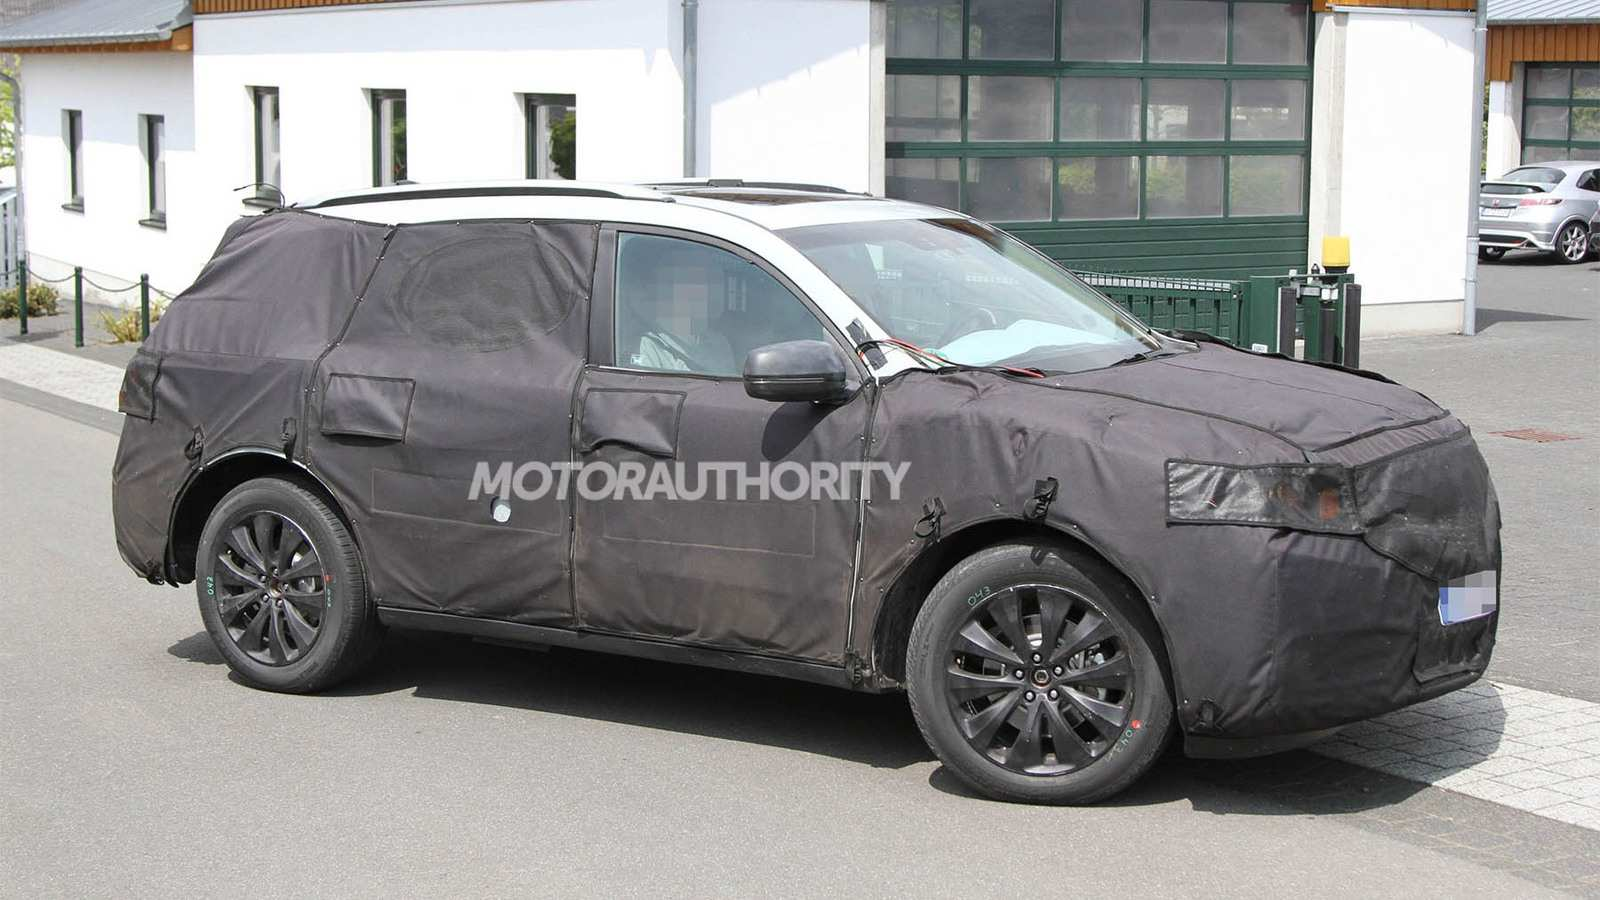 46 Concept of Acura Mdx 2020 Spy Shots Research New by Acura Mdx 2020 Spy Shots